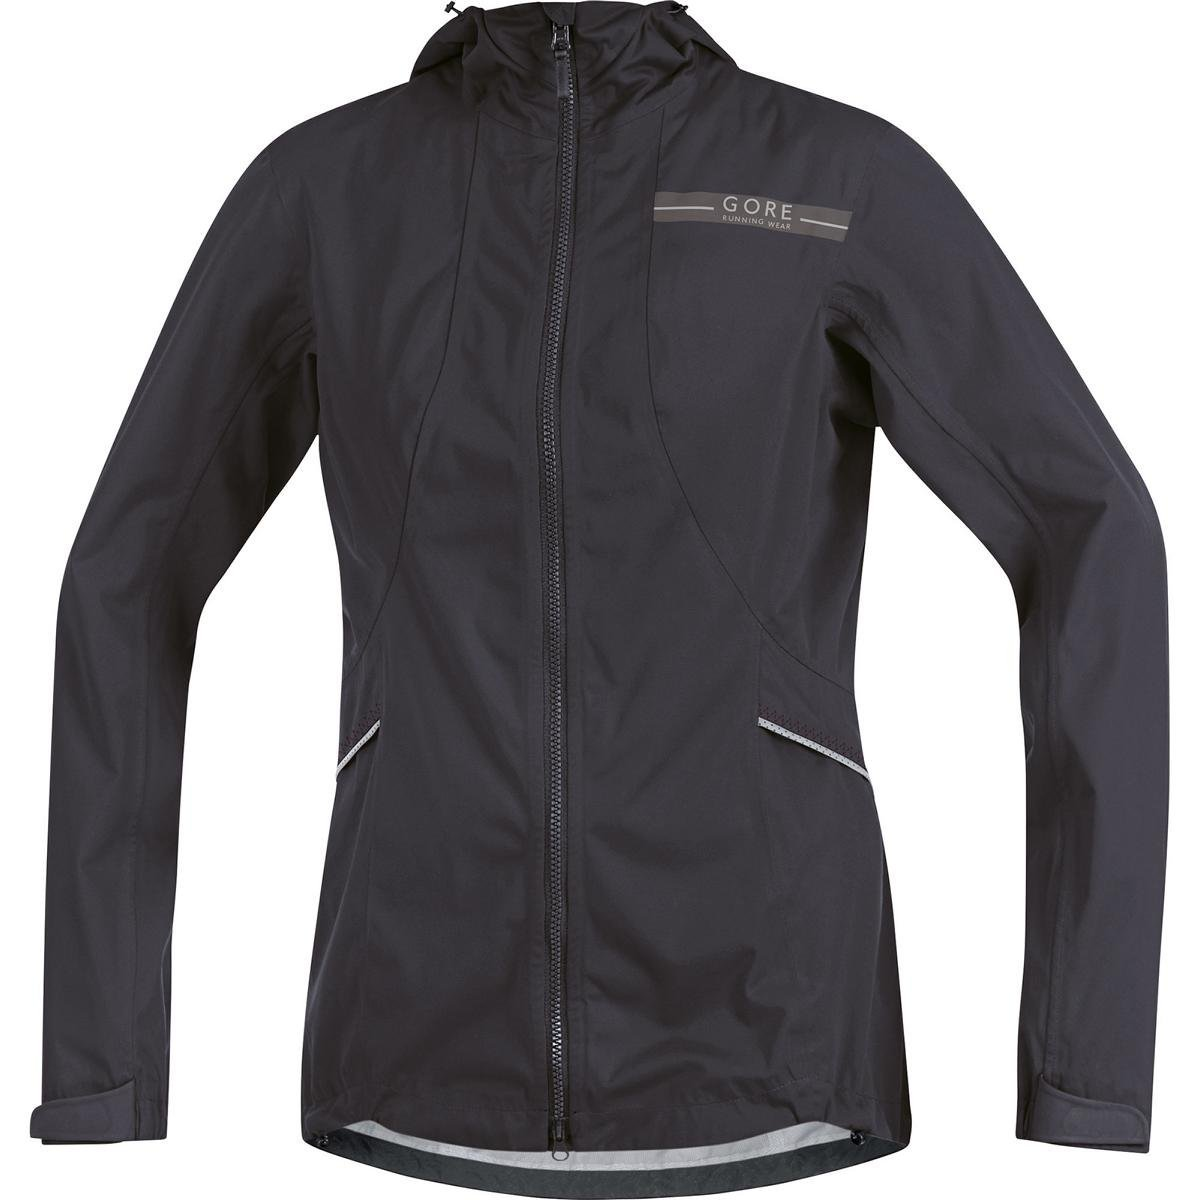 GORE WEAR Damen Jacke Air tex Active Jacket